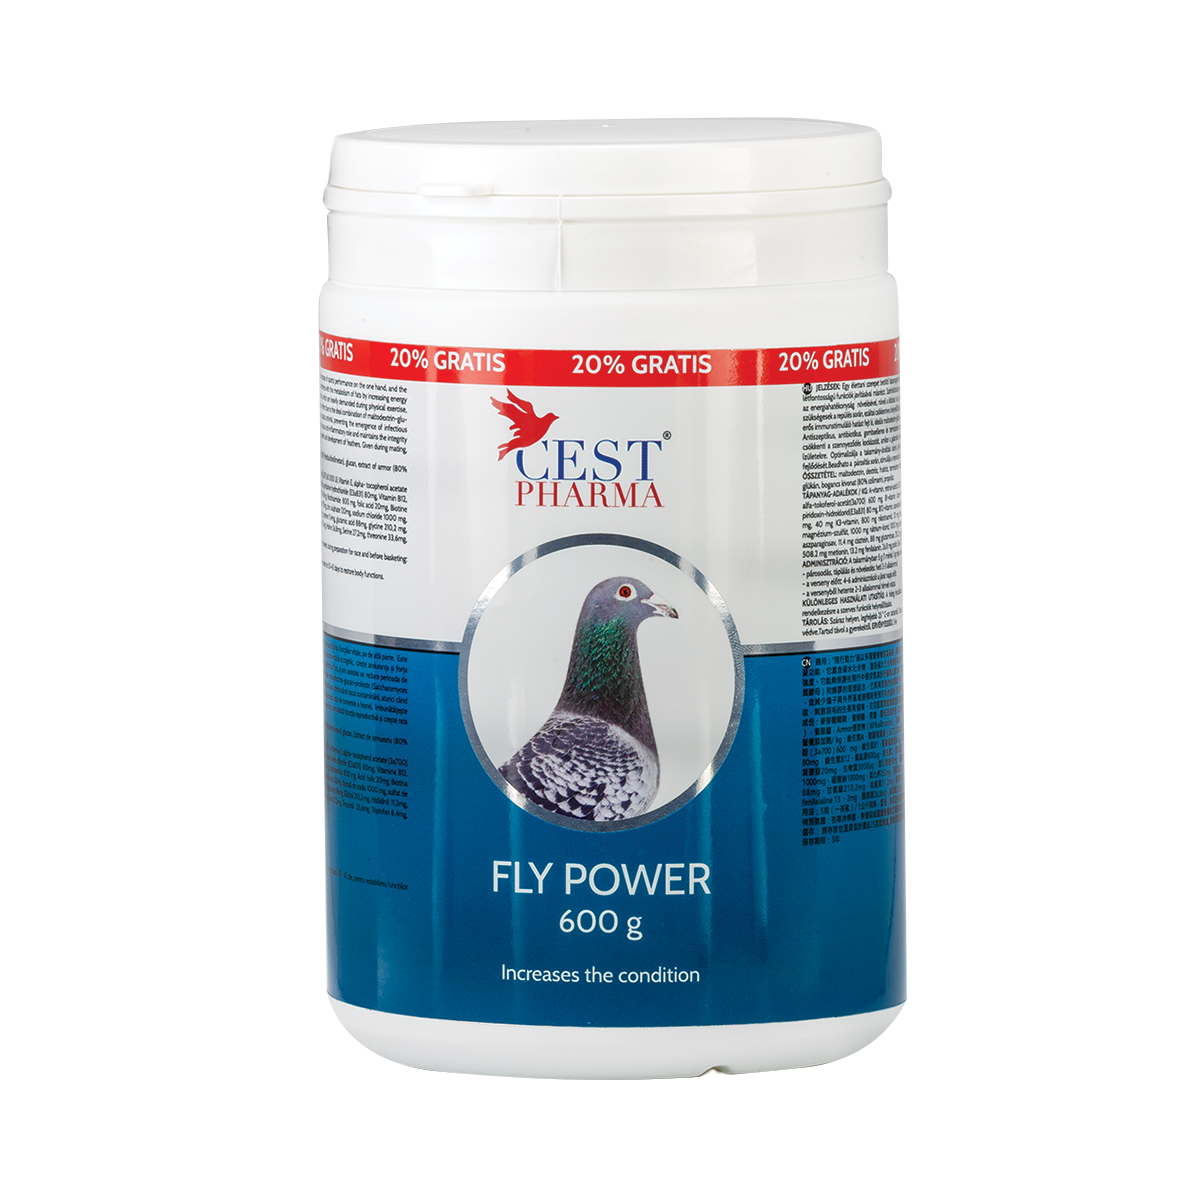 FLY POWER 600g